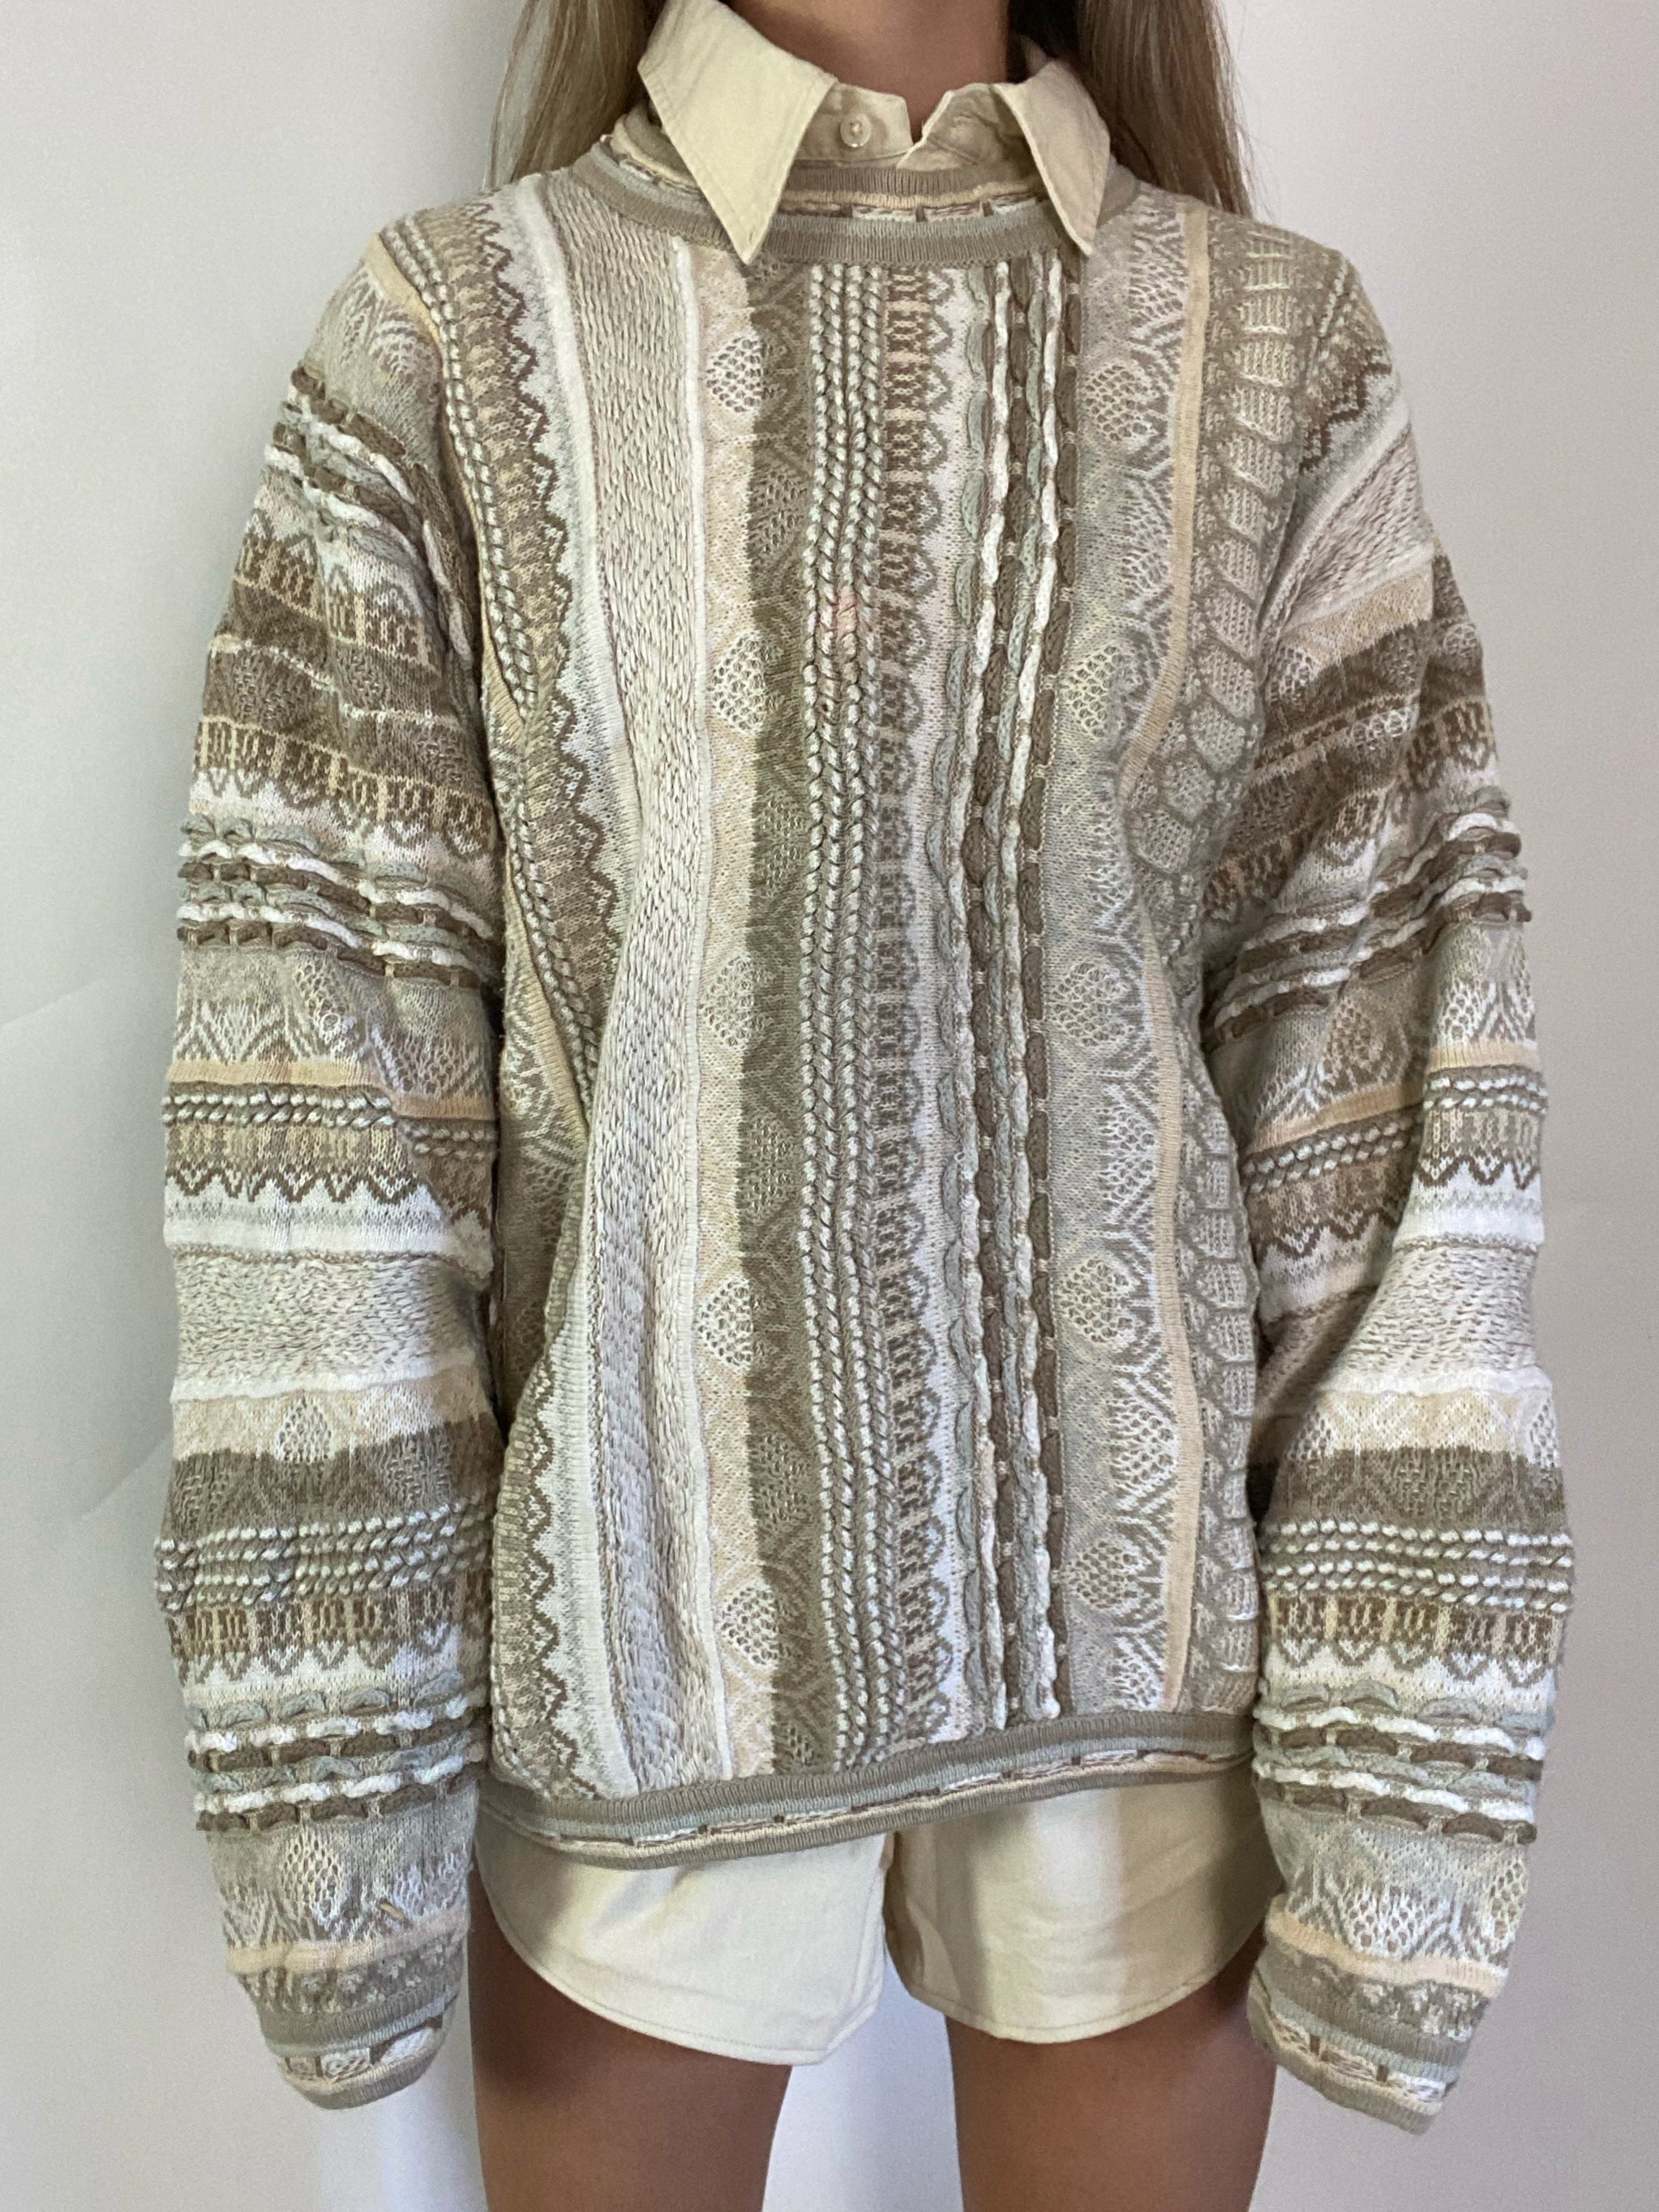 Vintage  knit sweater with pattern